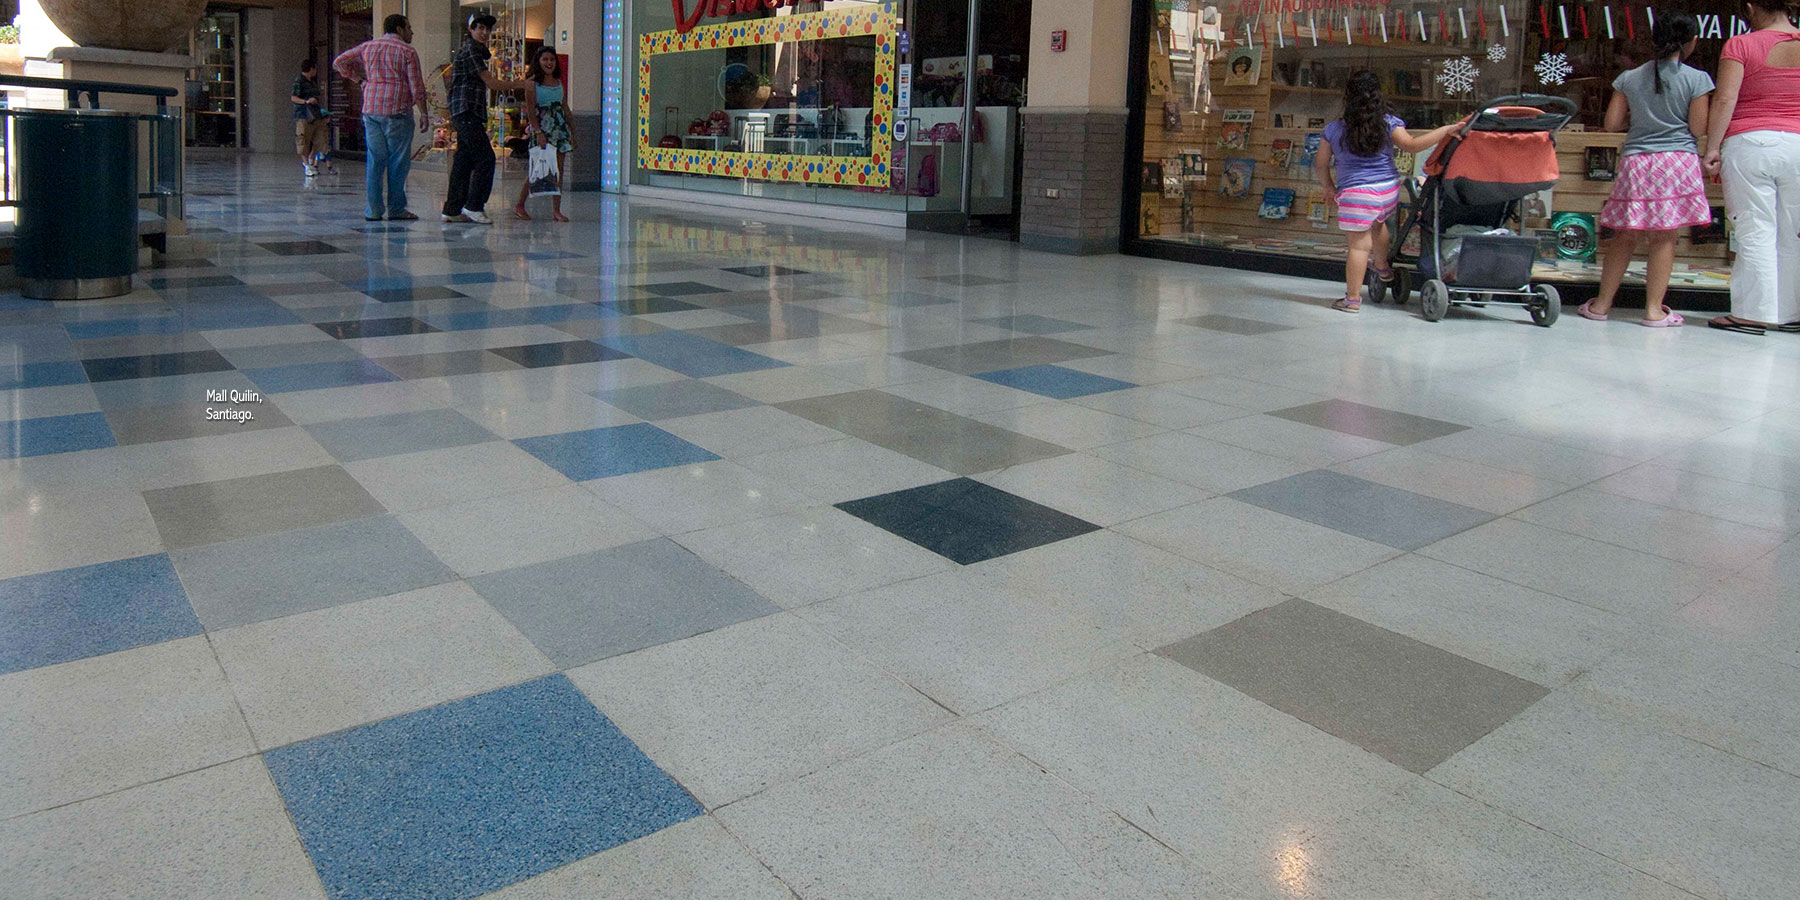 Mall Quilin